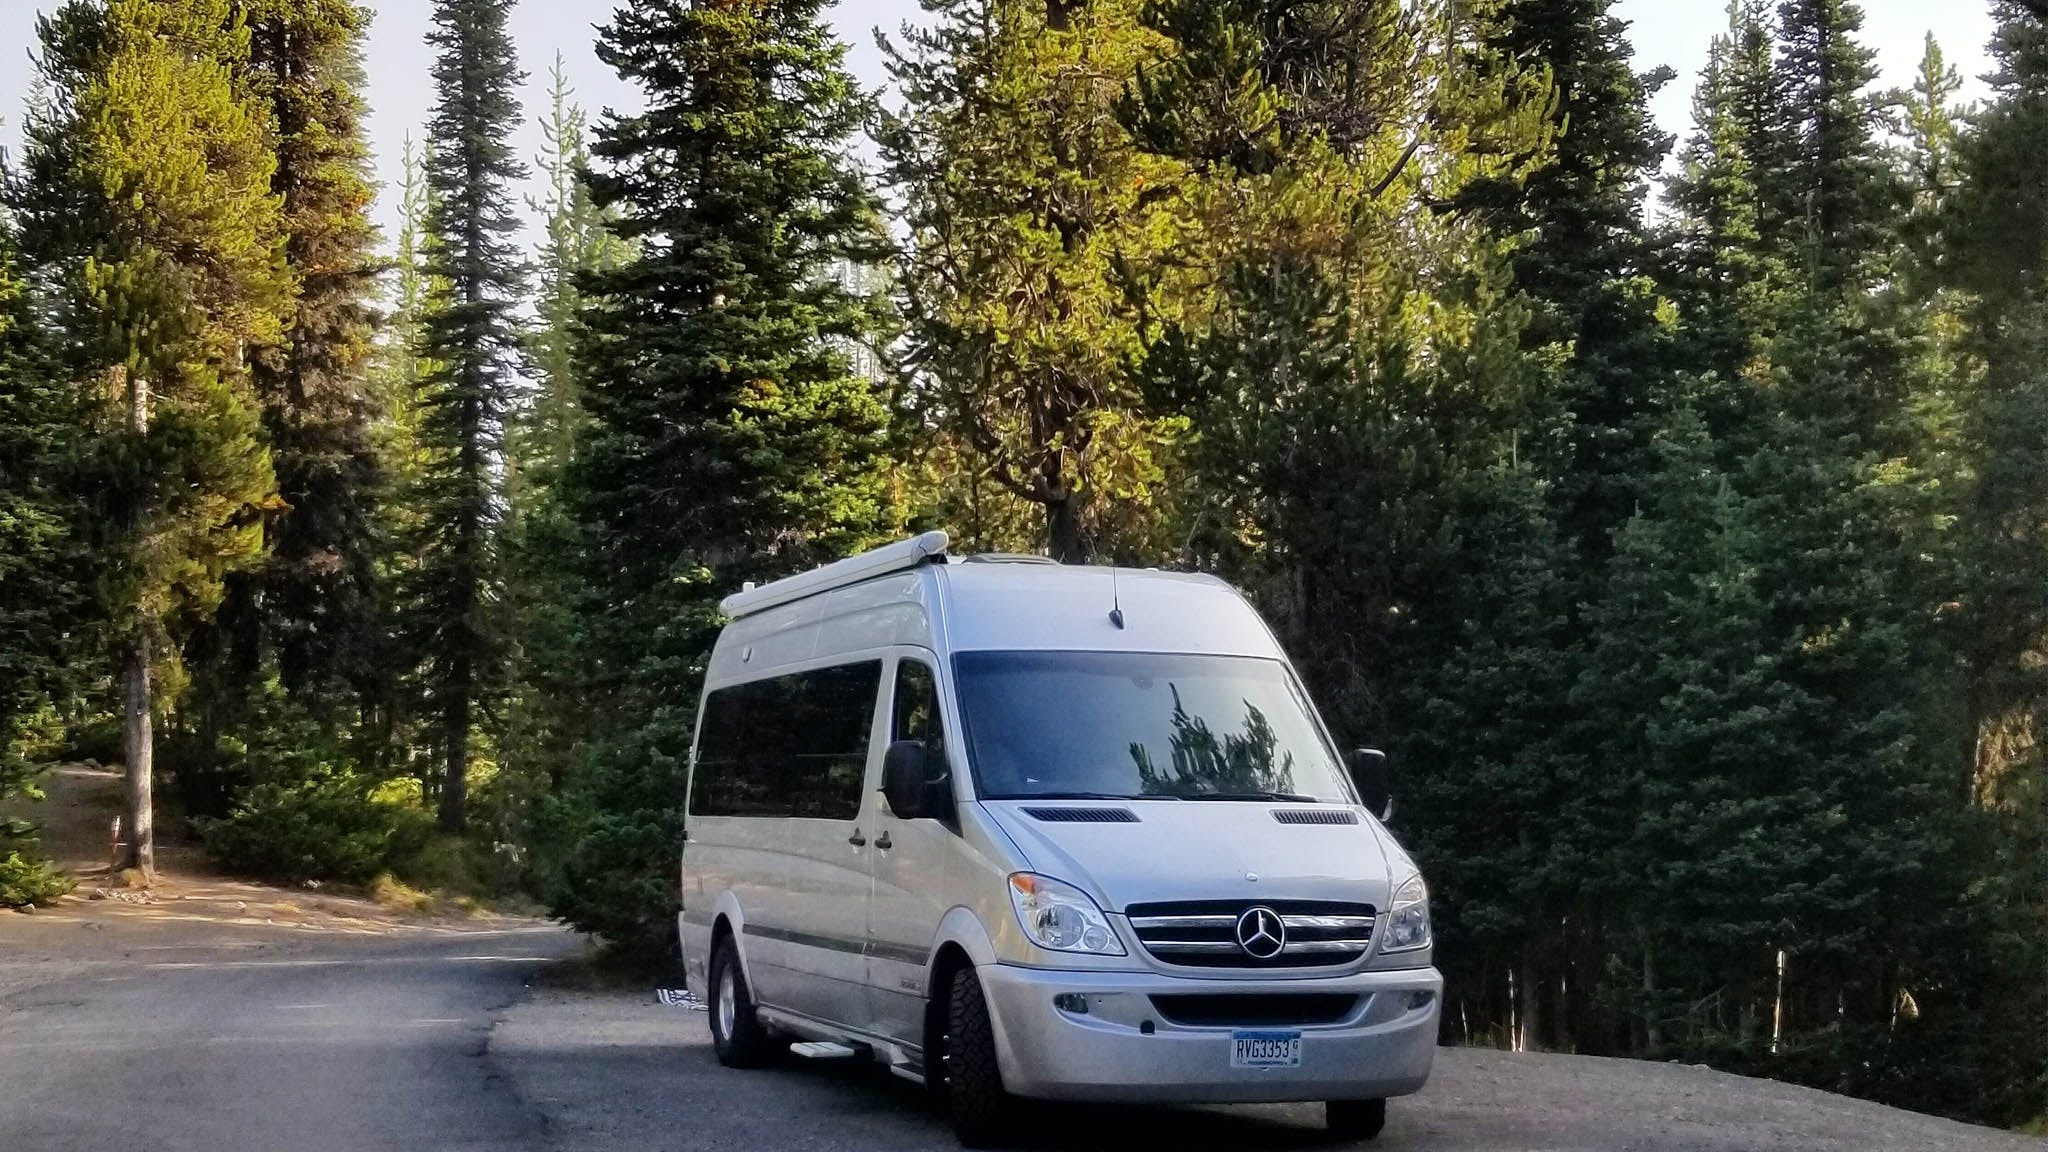 Airstream Interstate in a National Park